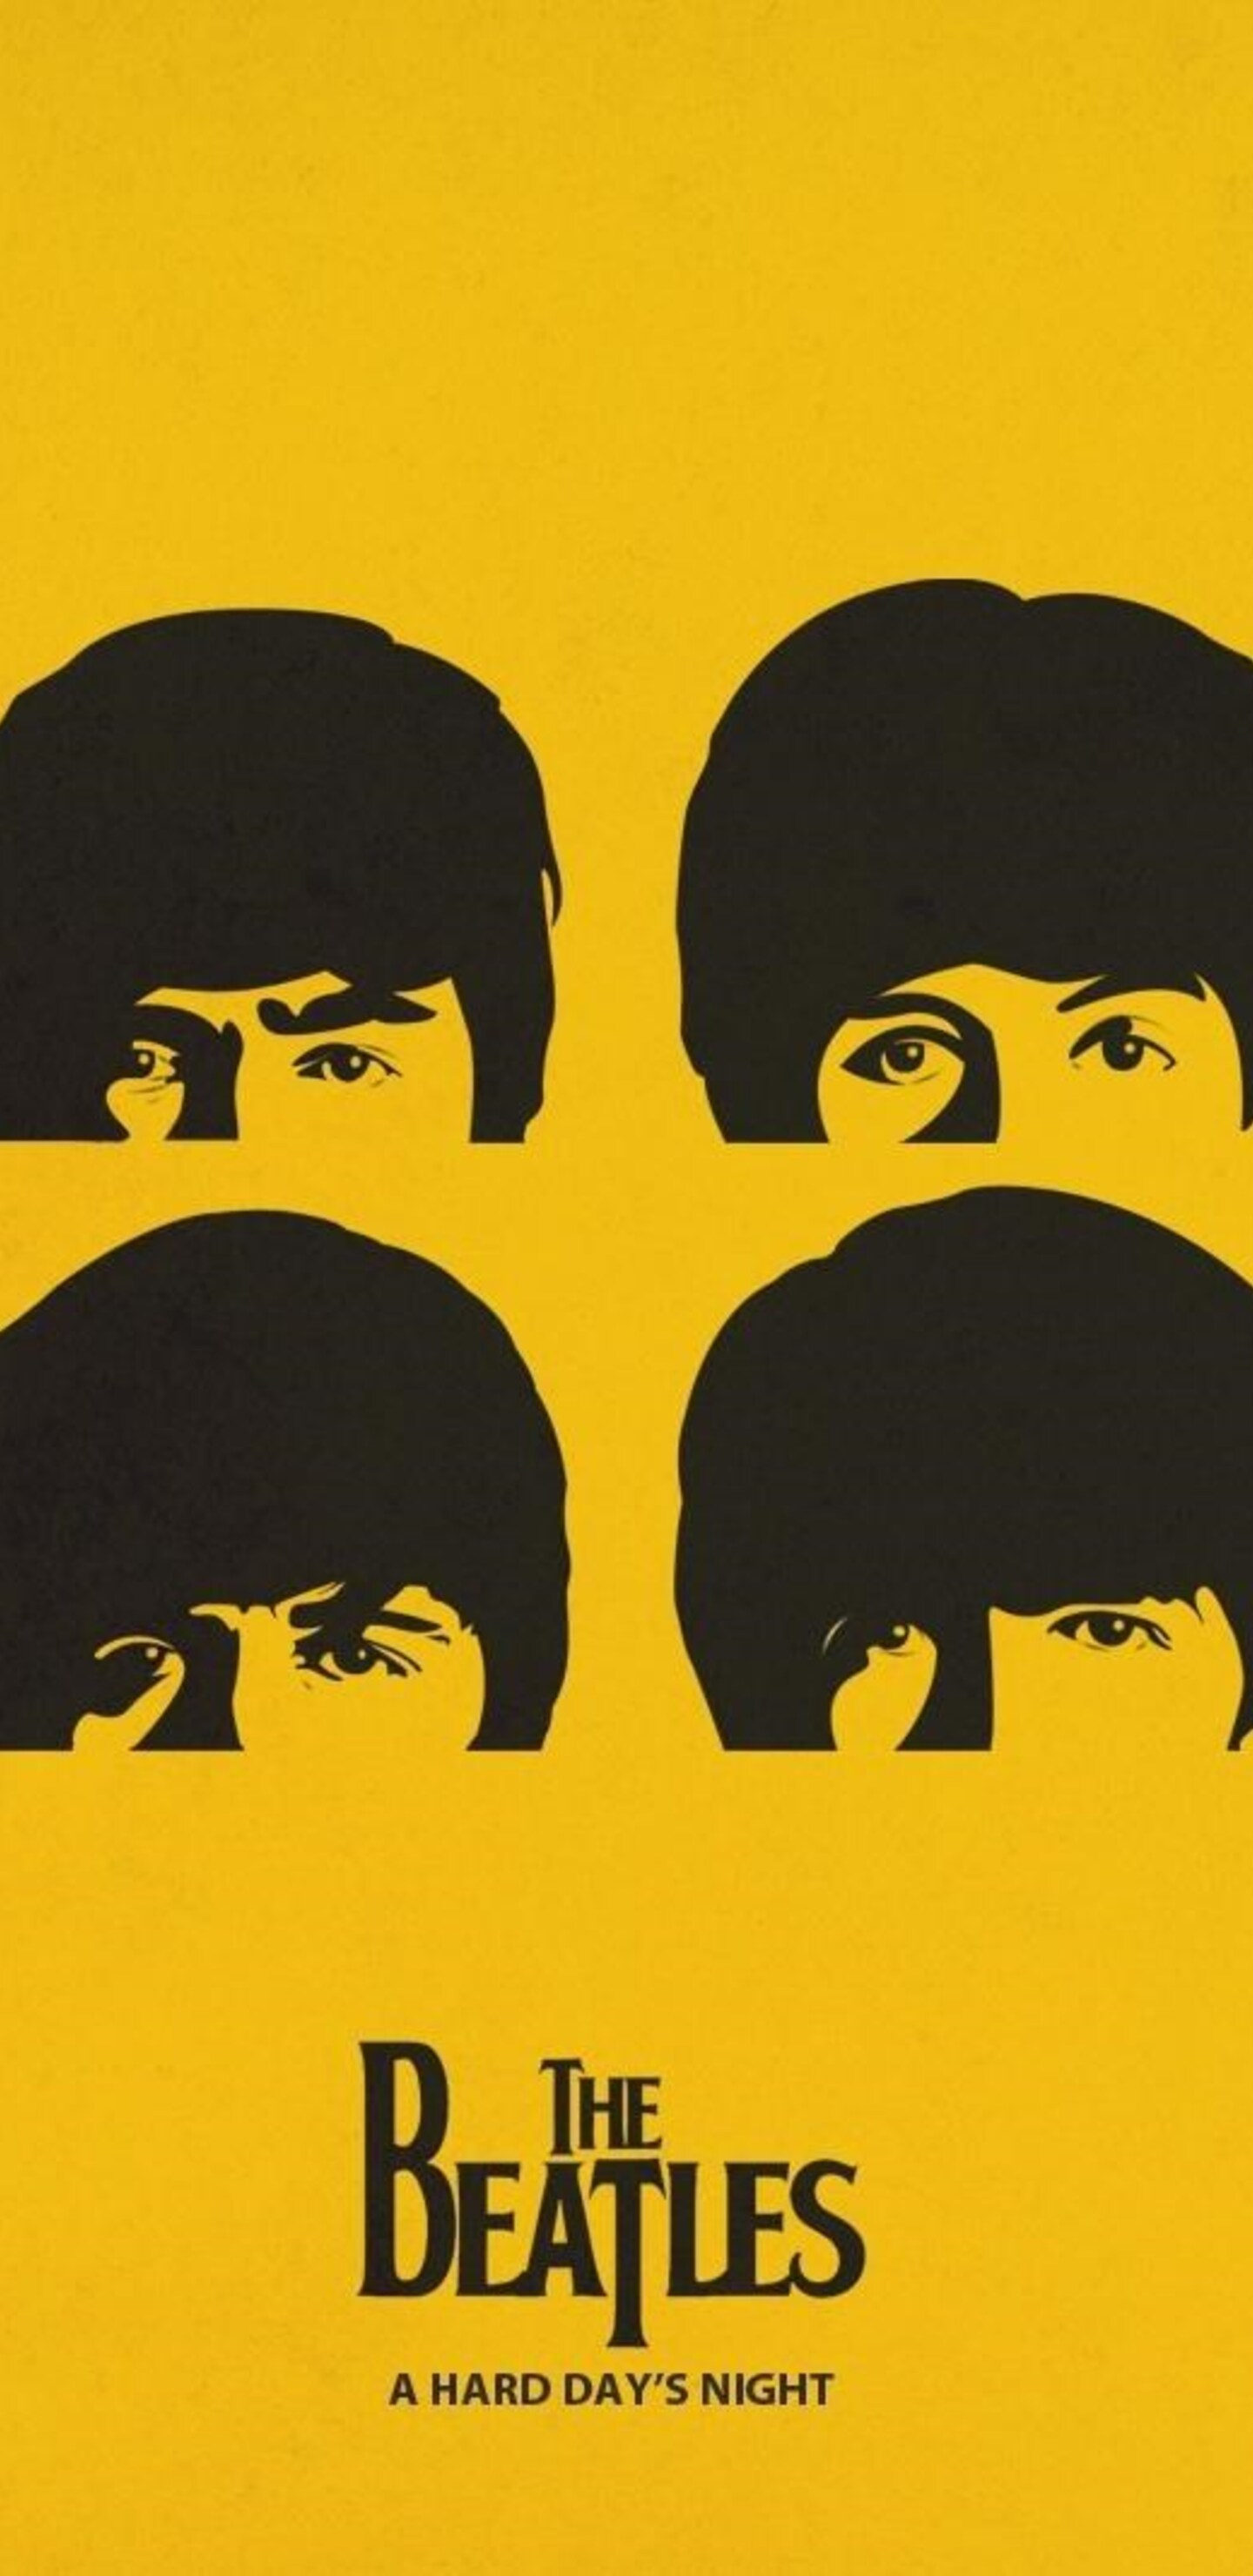 The Beatles Minimalism Pic